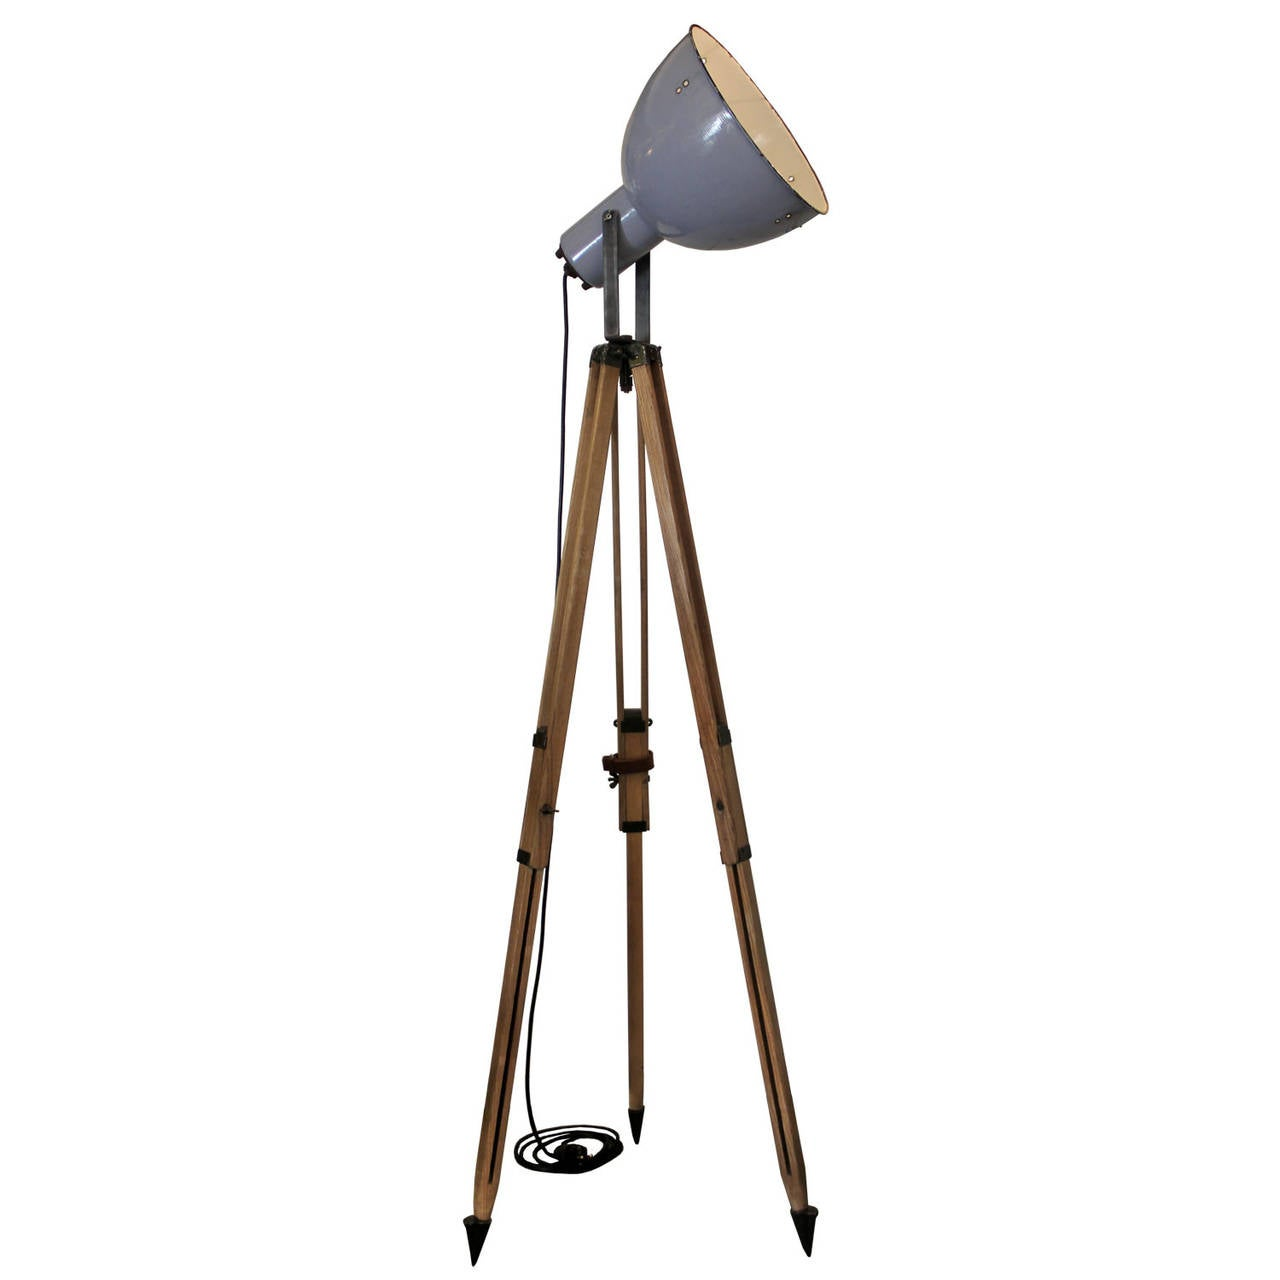 Tripod lipec vintage industrial spotlight on french wooden tripod at 1stdibs - Tripod spotlight lamp ...